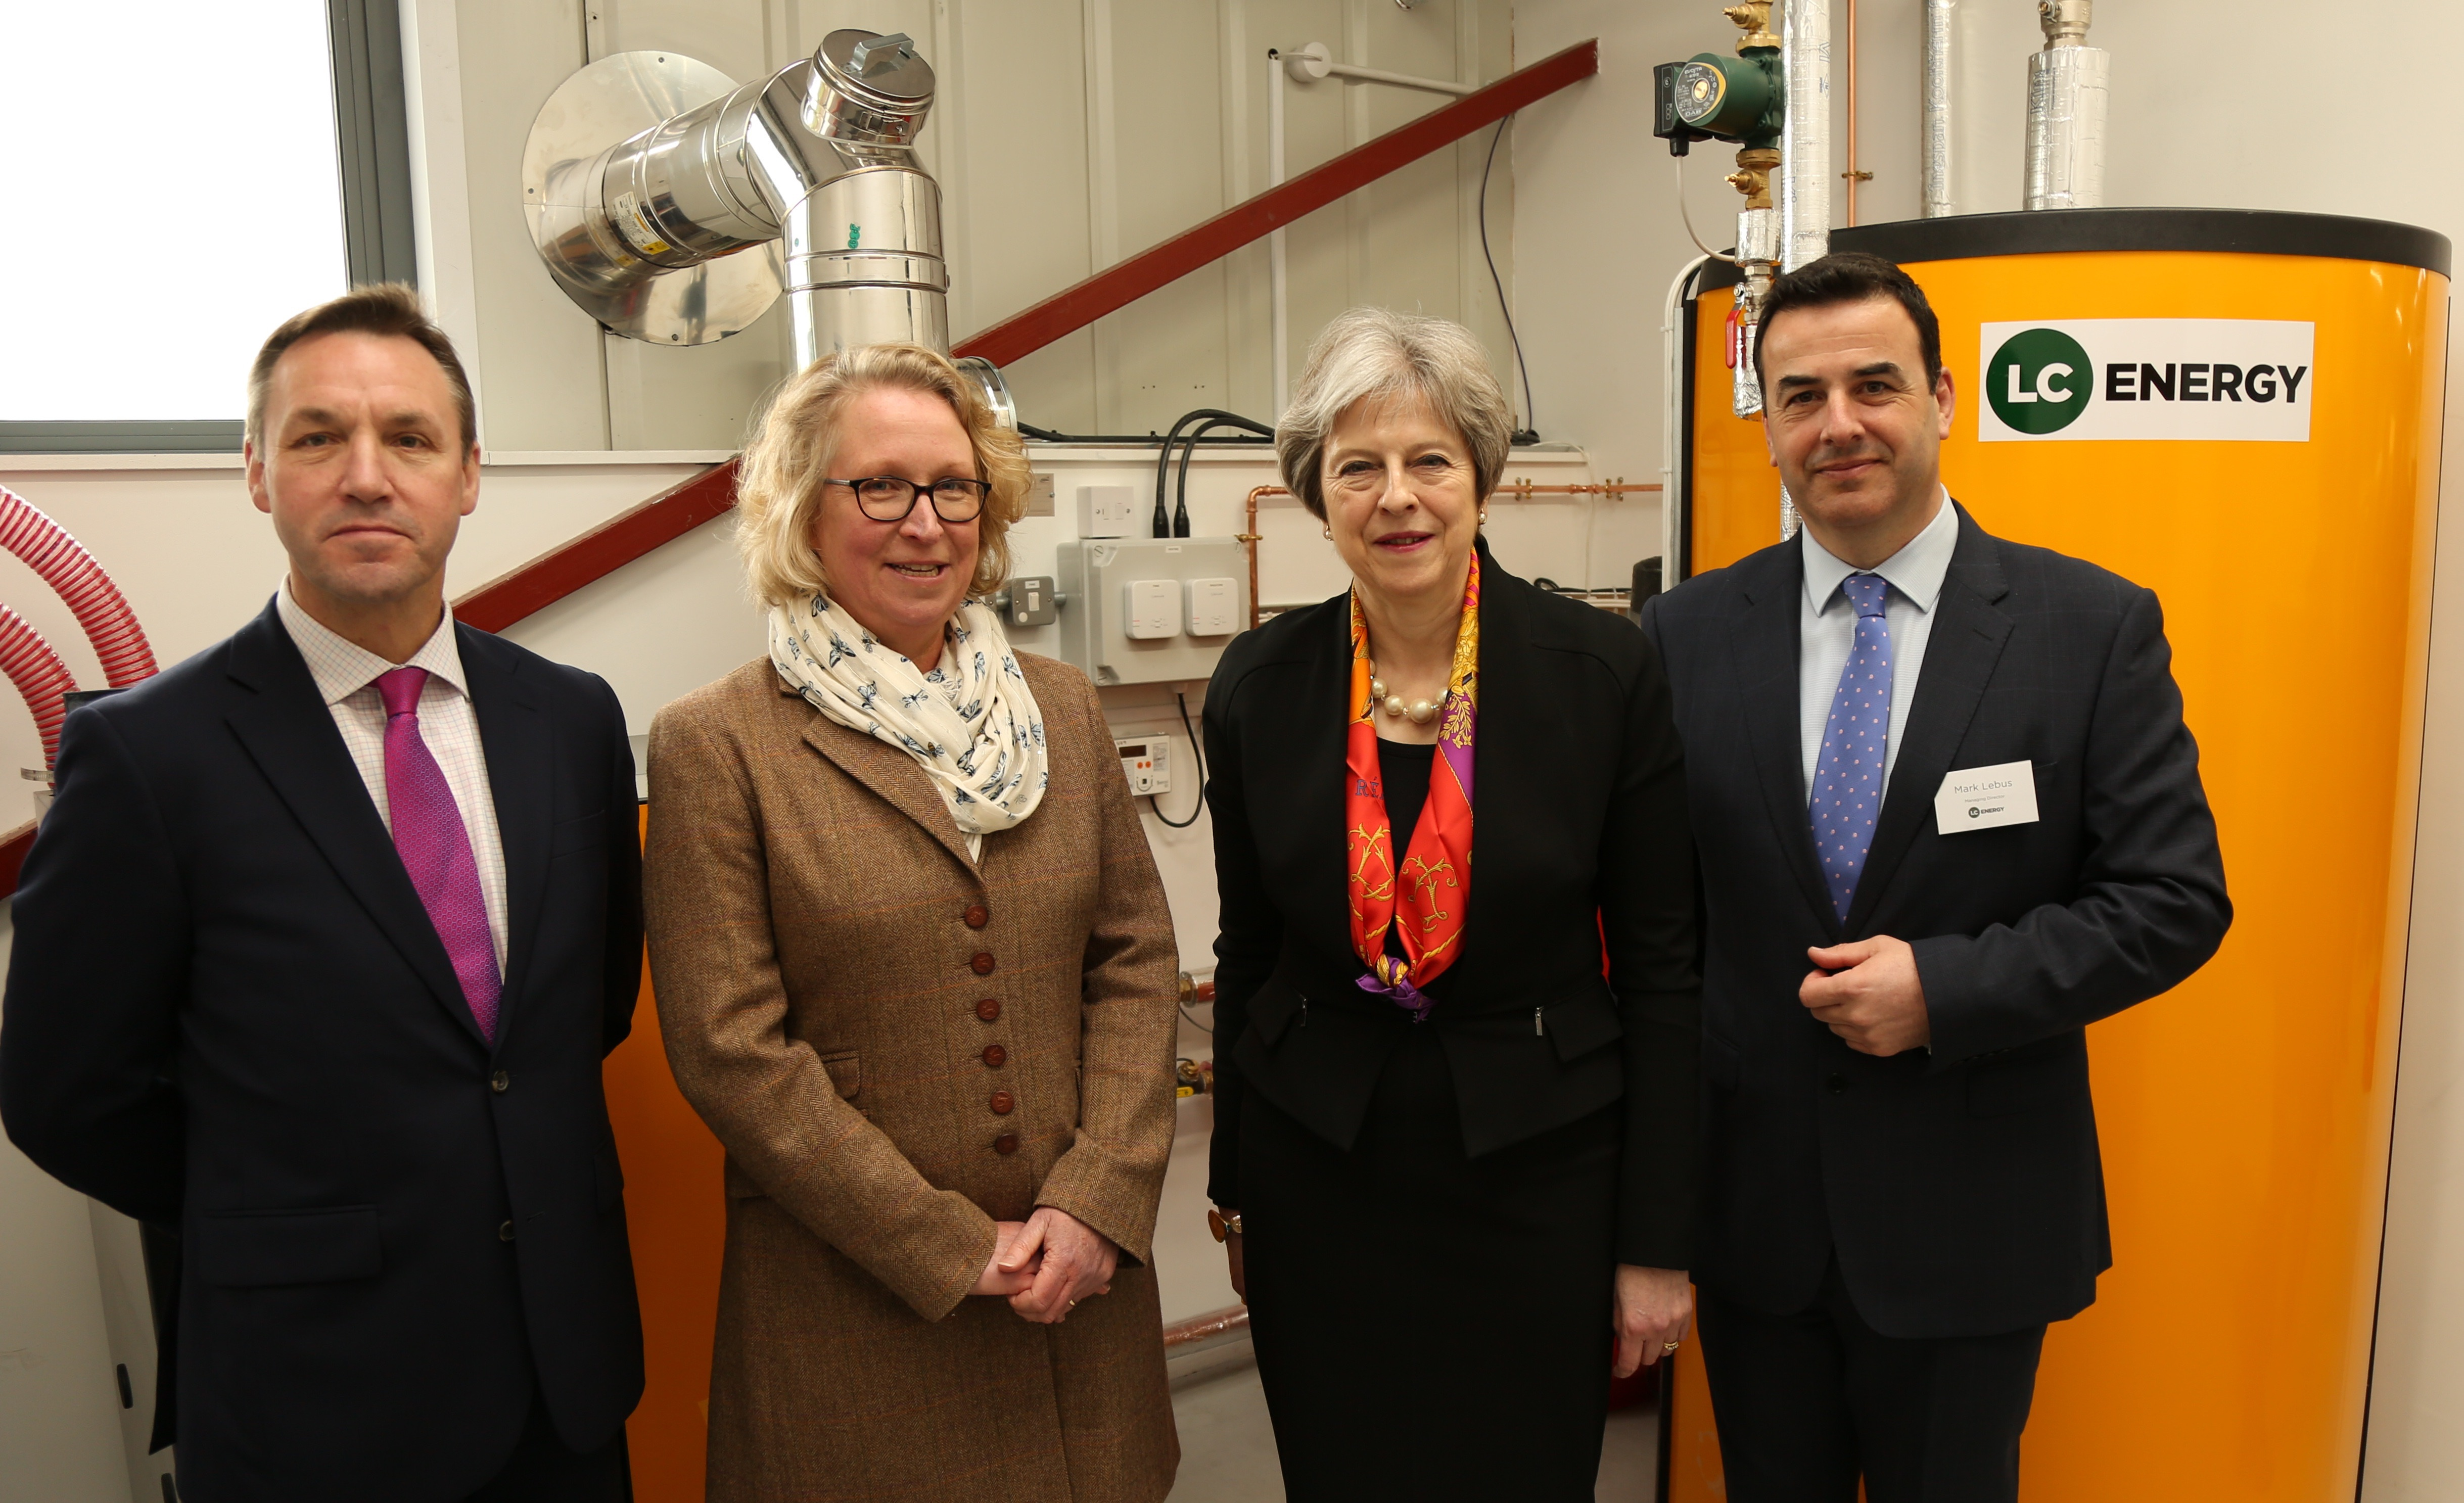 Theresa May opens the UK's first biomass training facility at a further education college